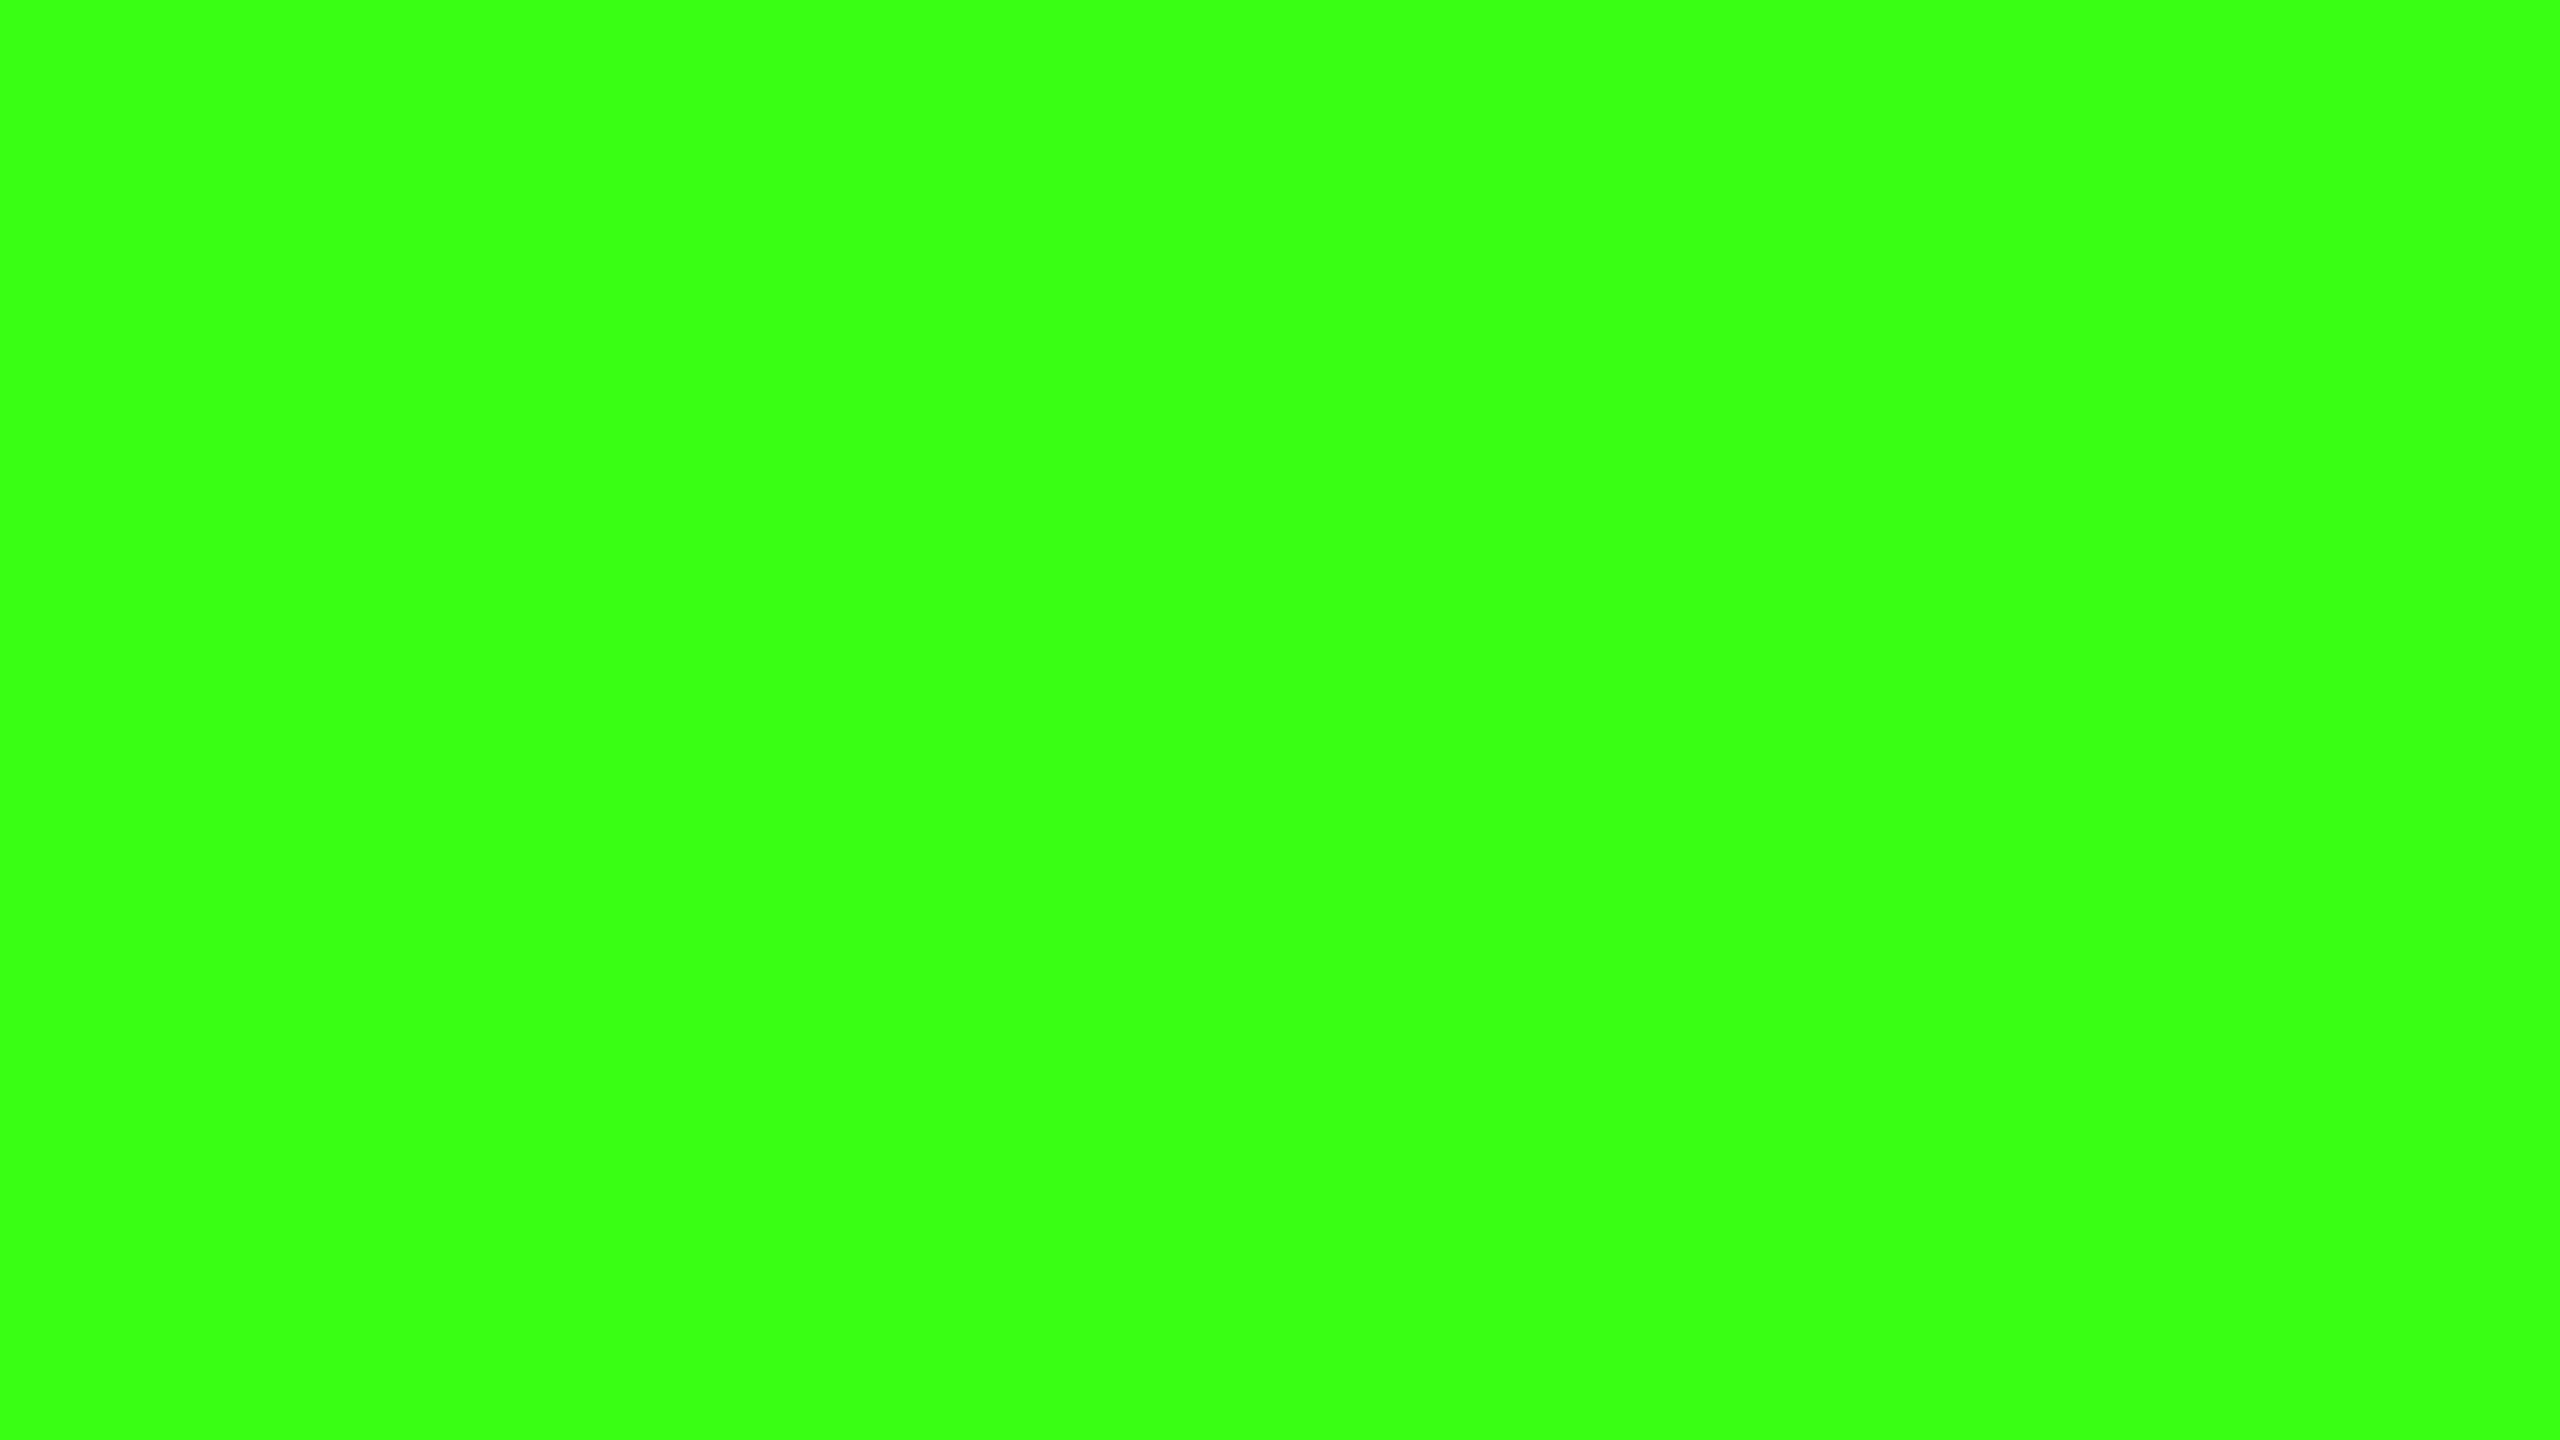 1152x864 Bright Green Solid Color Background |Bright Green Color Background